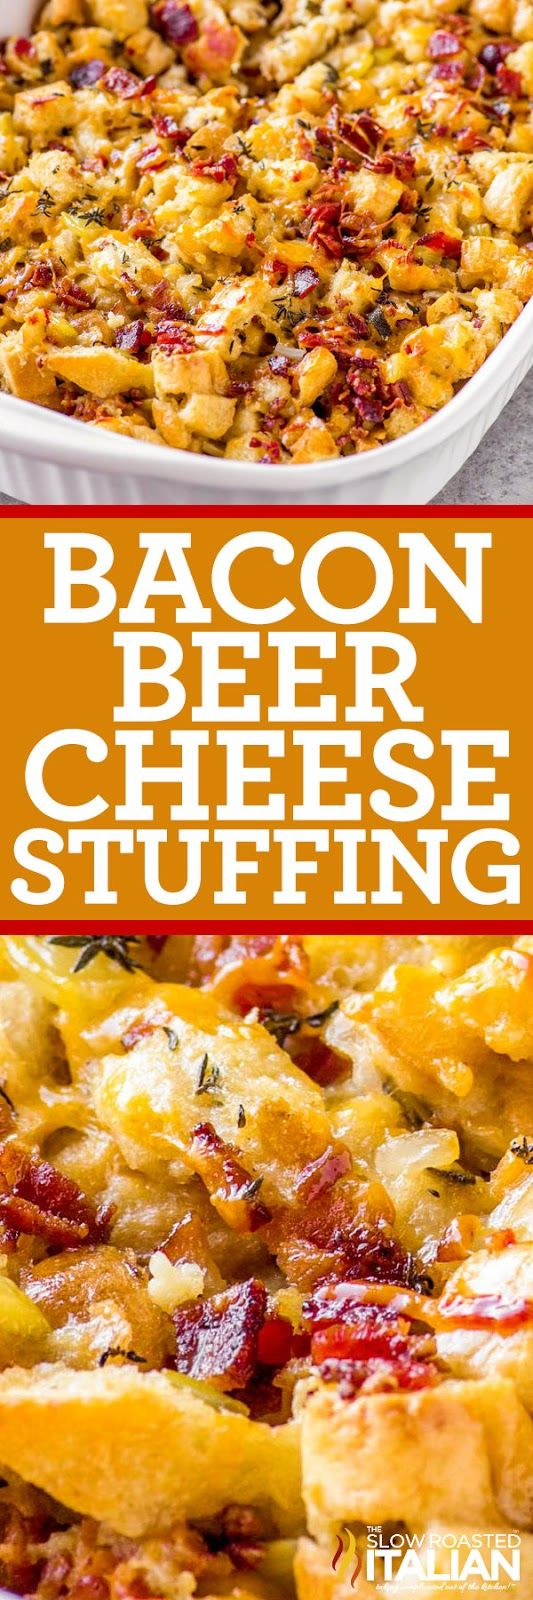 This bacon beer cheese stuffing will kick your side dish game to the next level! Classic stuffing spiked with citrus beer, savory bacon, and cheddar cheese.